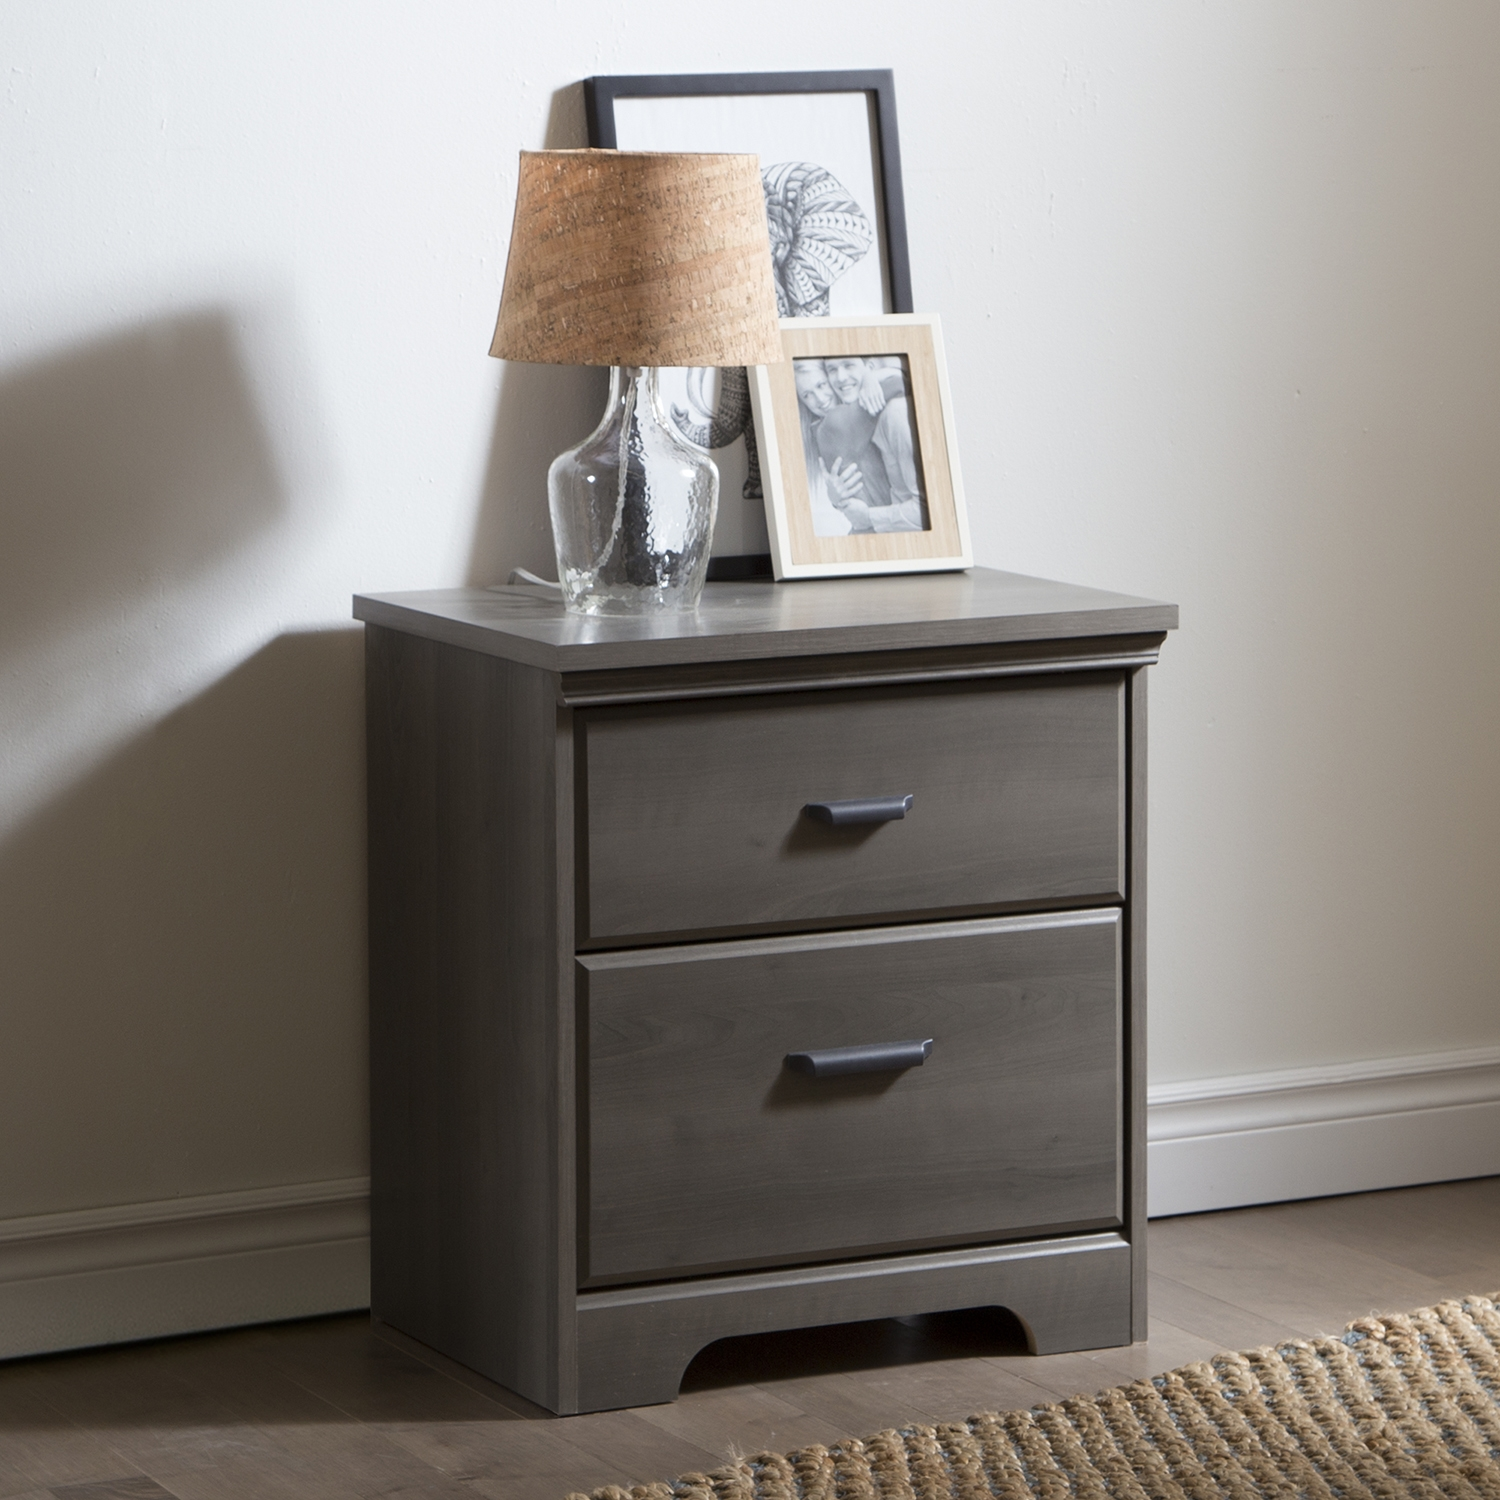 Versa 2 Drawers Nightstand - Gray Maple - SS-9041060